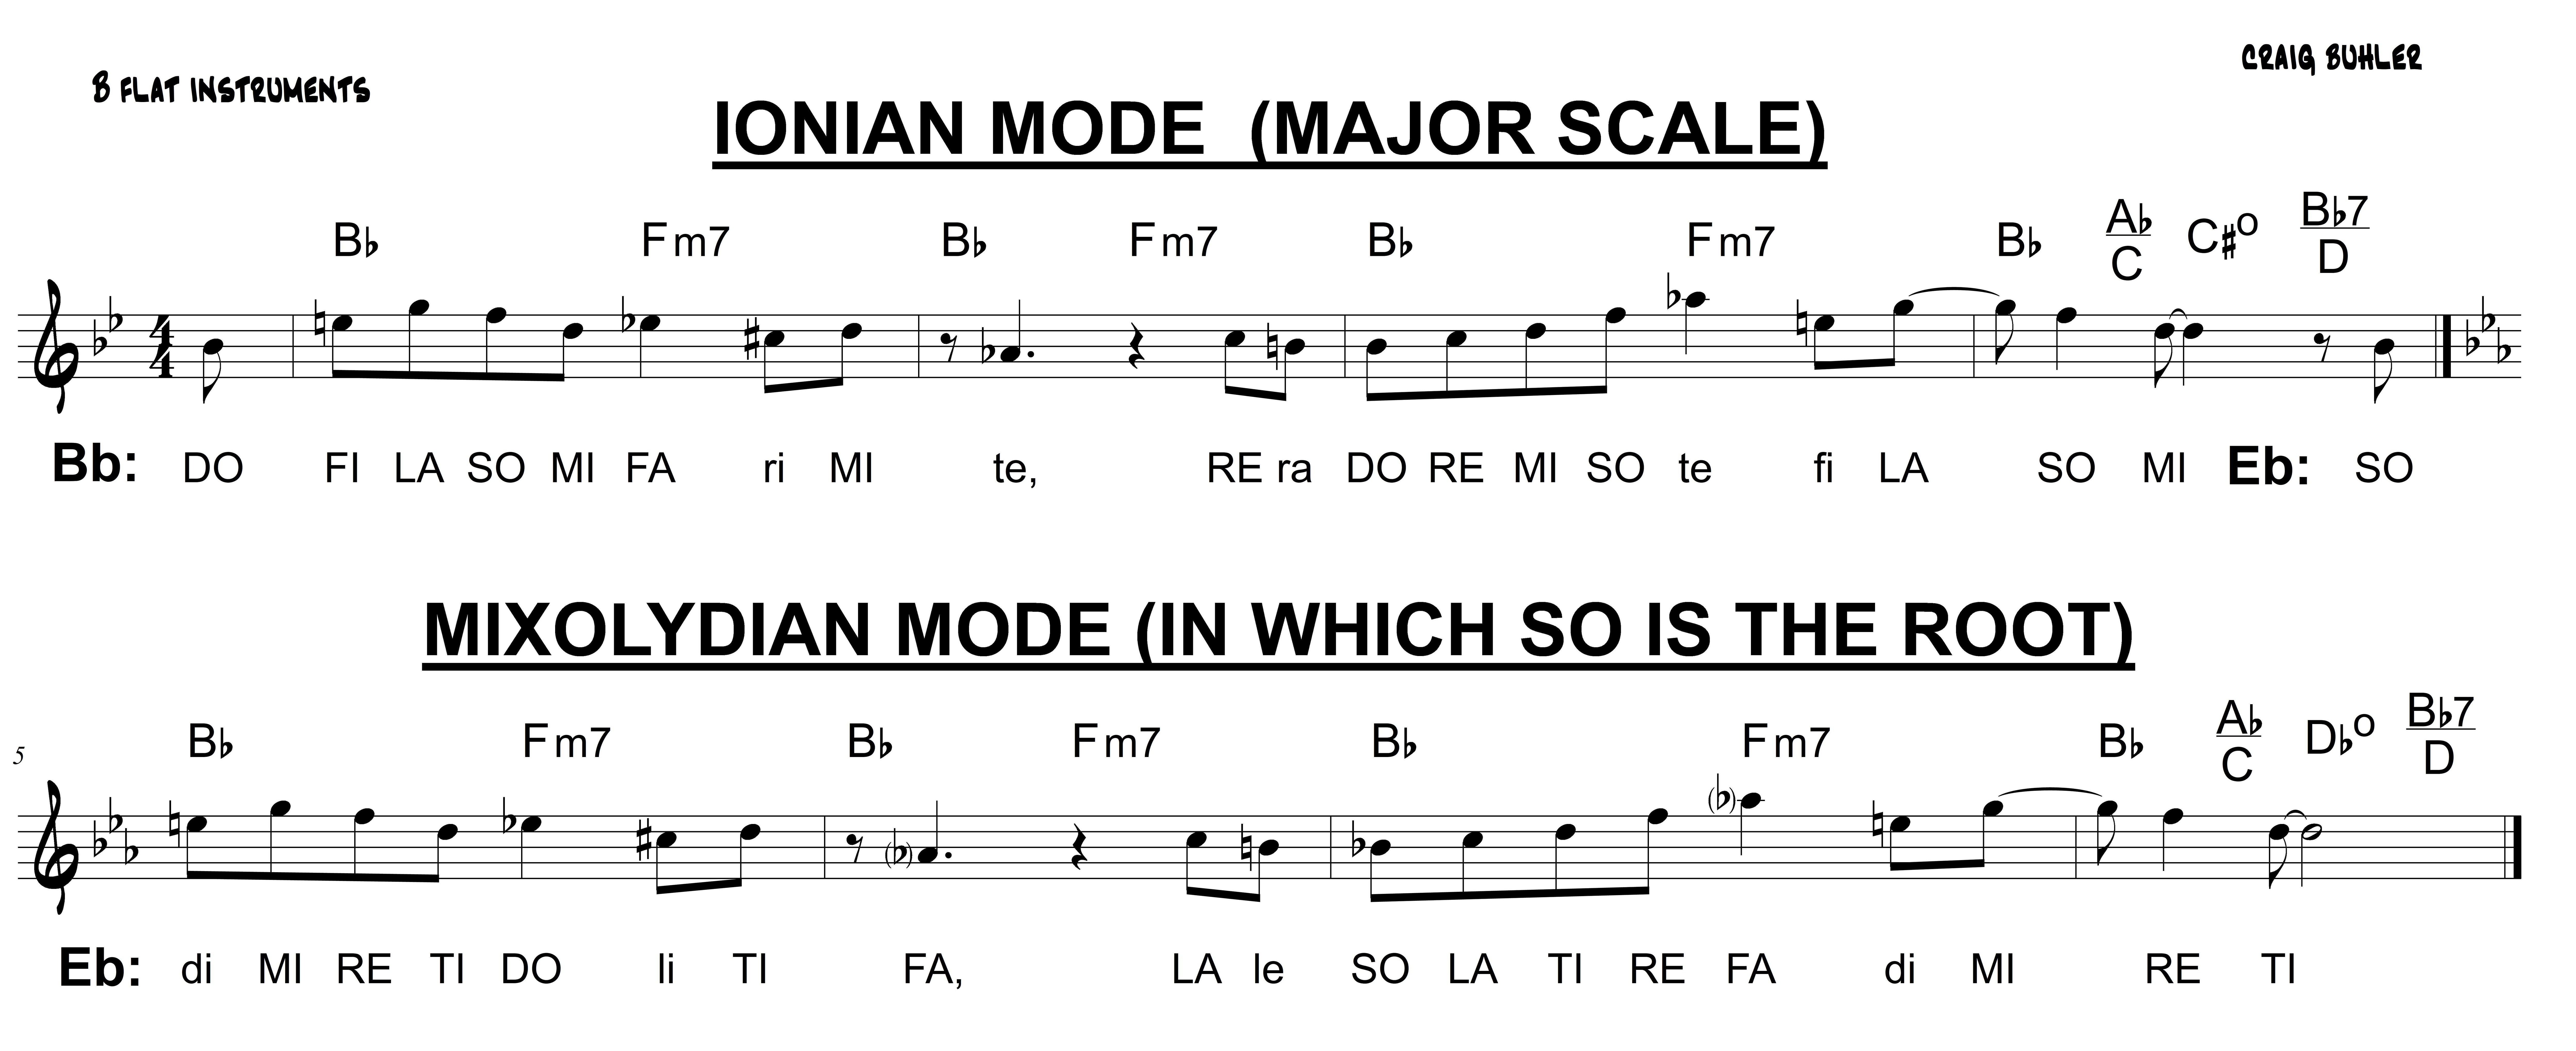 CANTABILE one rep SHOWING BOTH MODES cropped